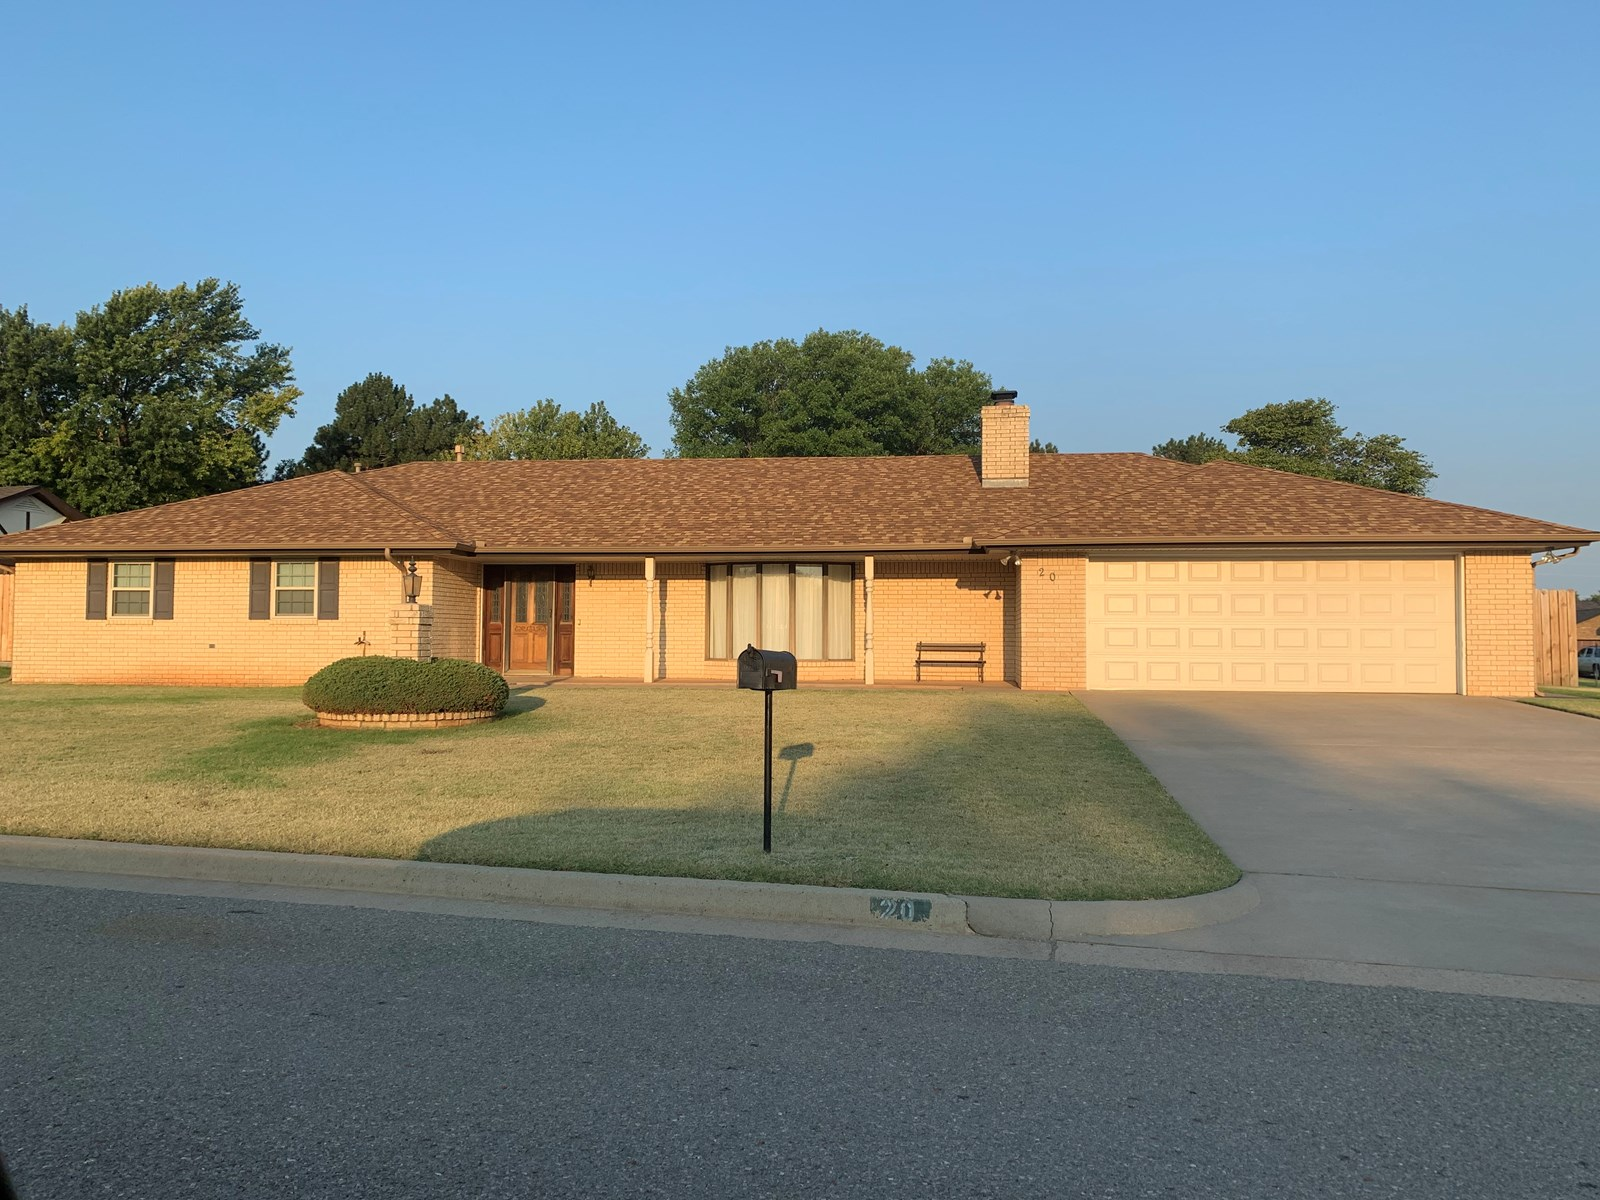 Clinton, OK Home for sale in Custer County, Western Oklahoma